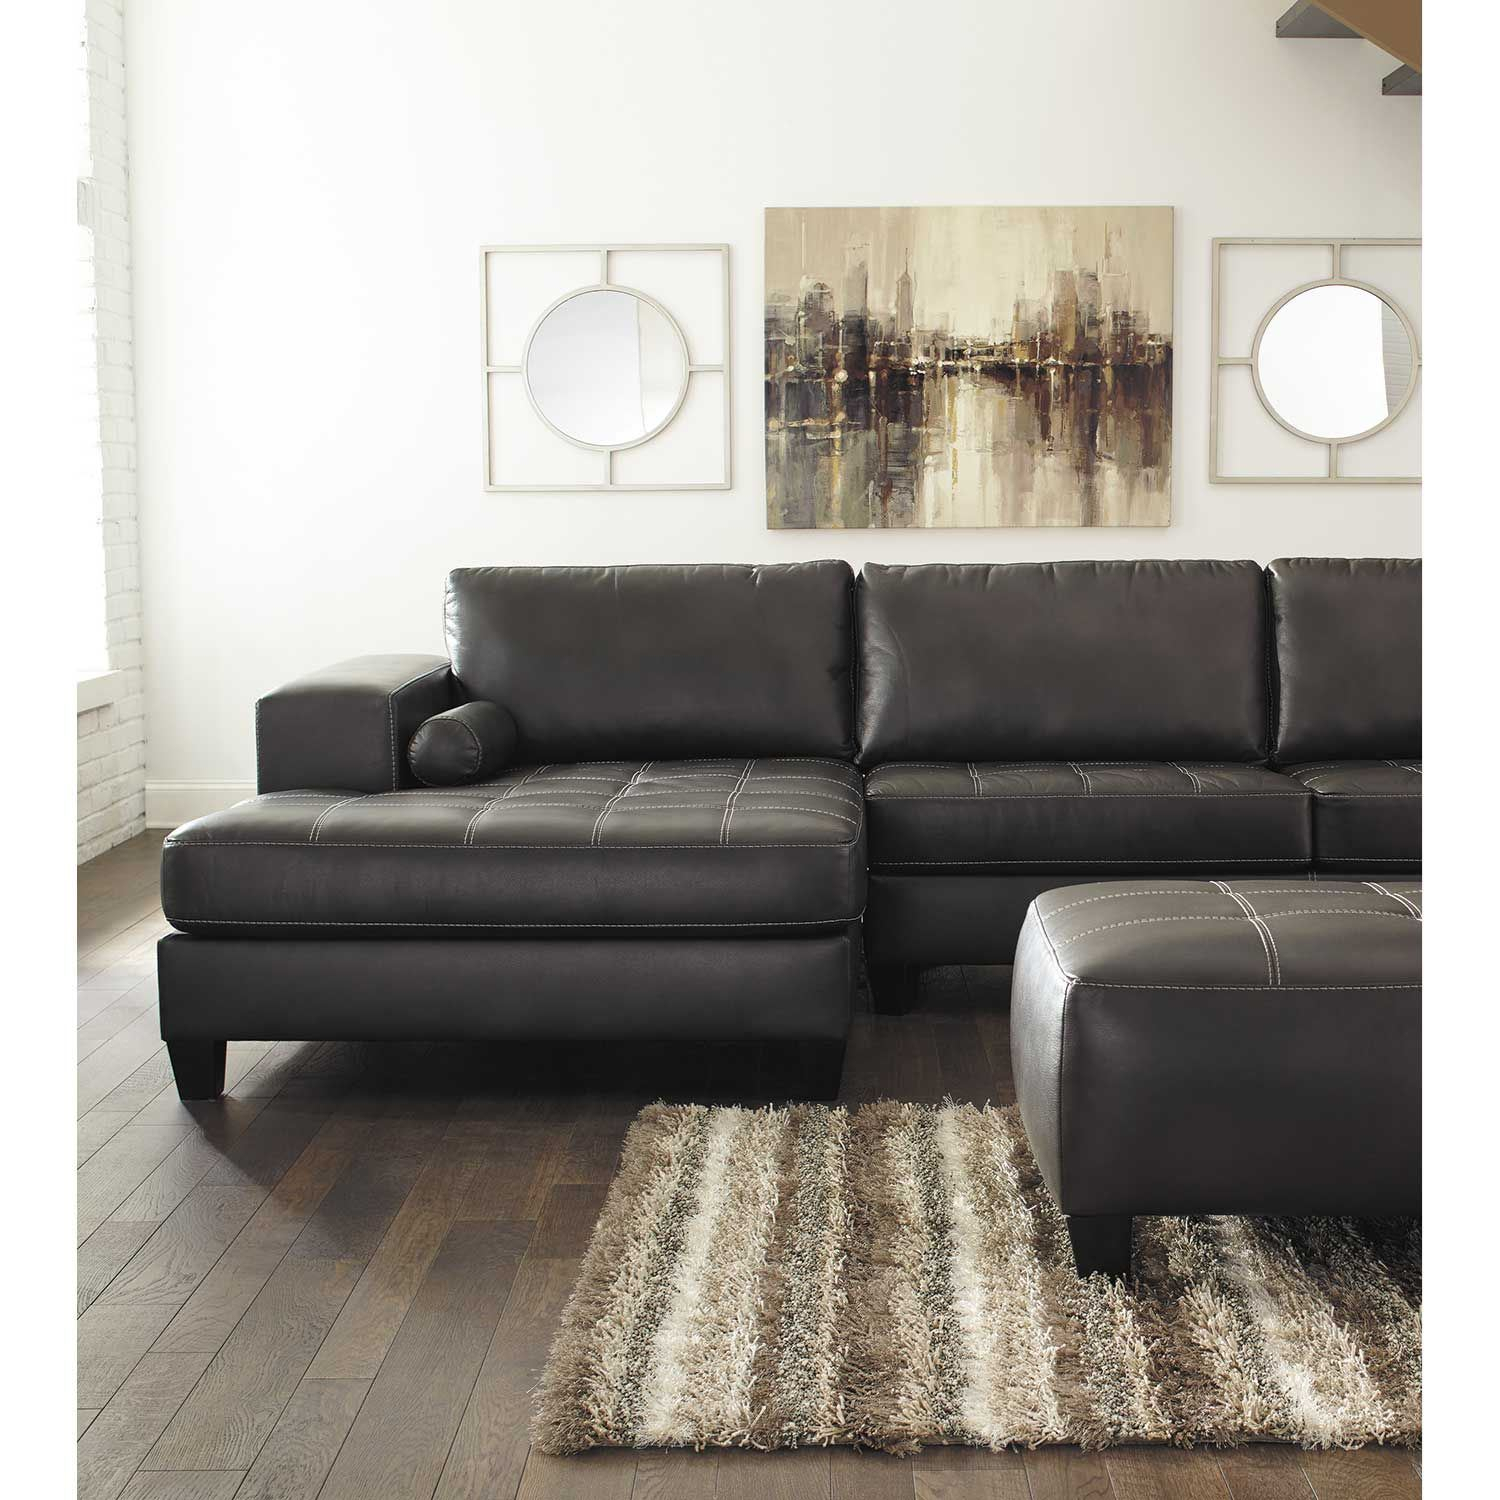 Nokomis 2 Piece Sleeper Sectional With Laf Chaise 8770169 For Aspen 2 Piece Sleeper Sectionals With Laf Chaise (View 4 of 15)